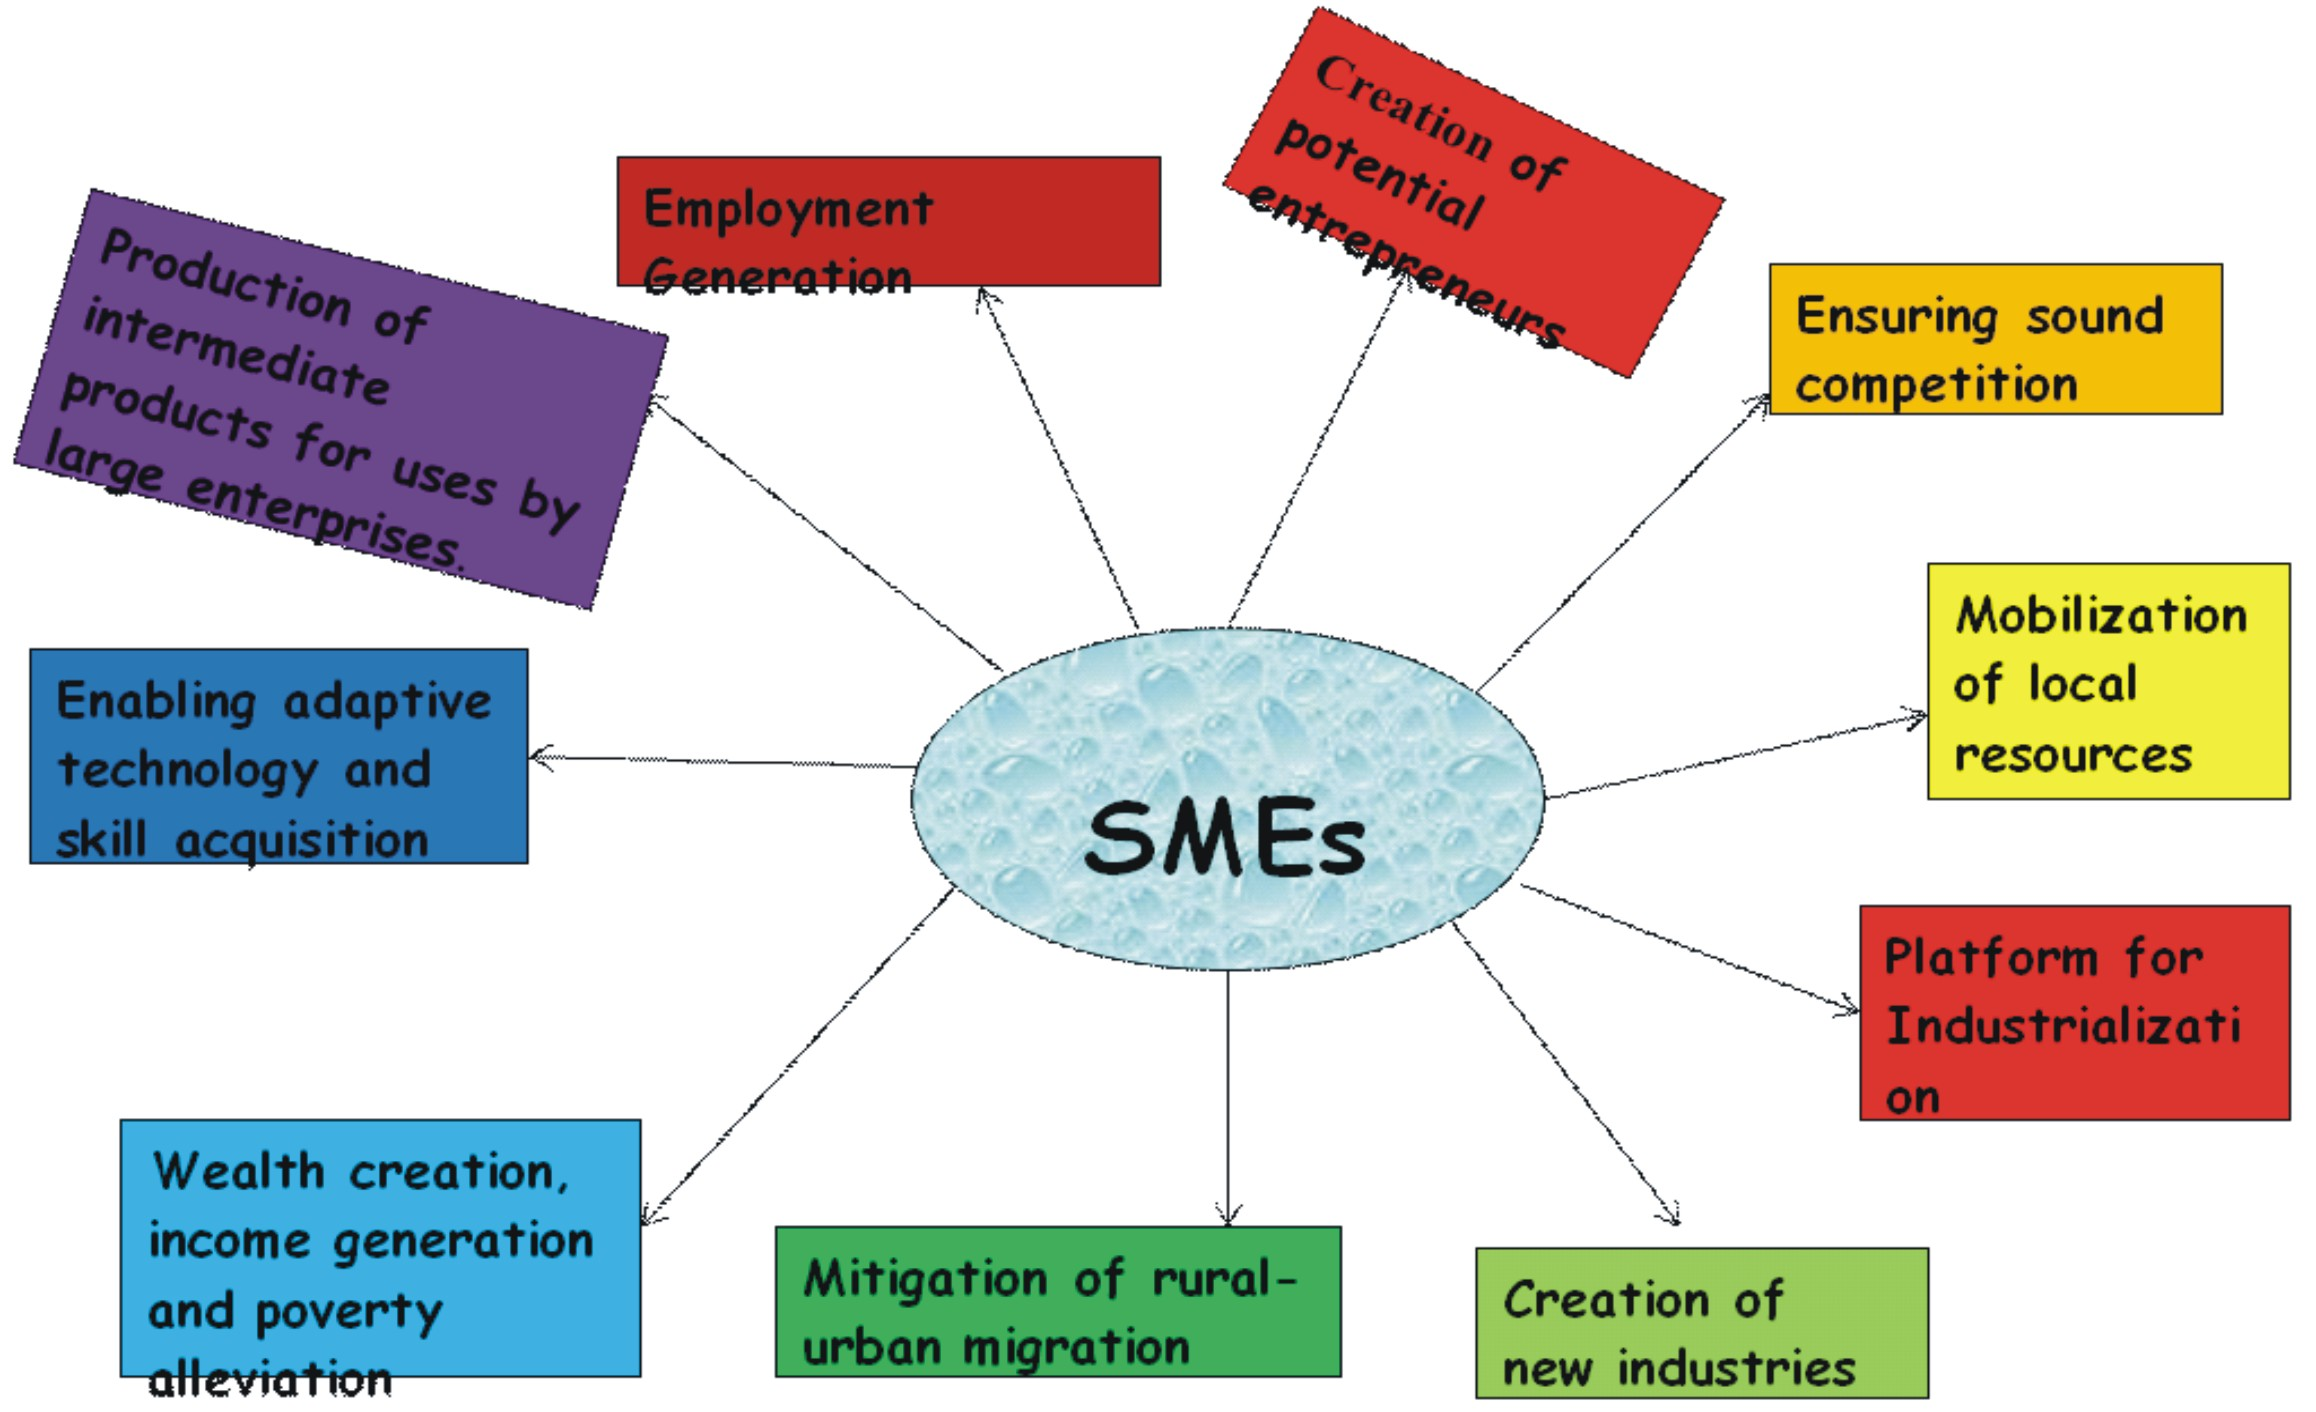 Expert wants adequate funding for SMEs